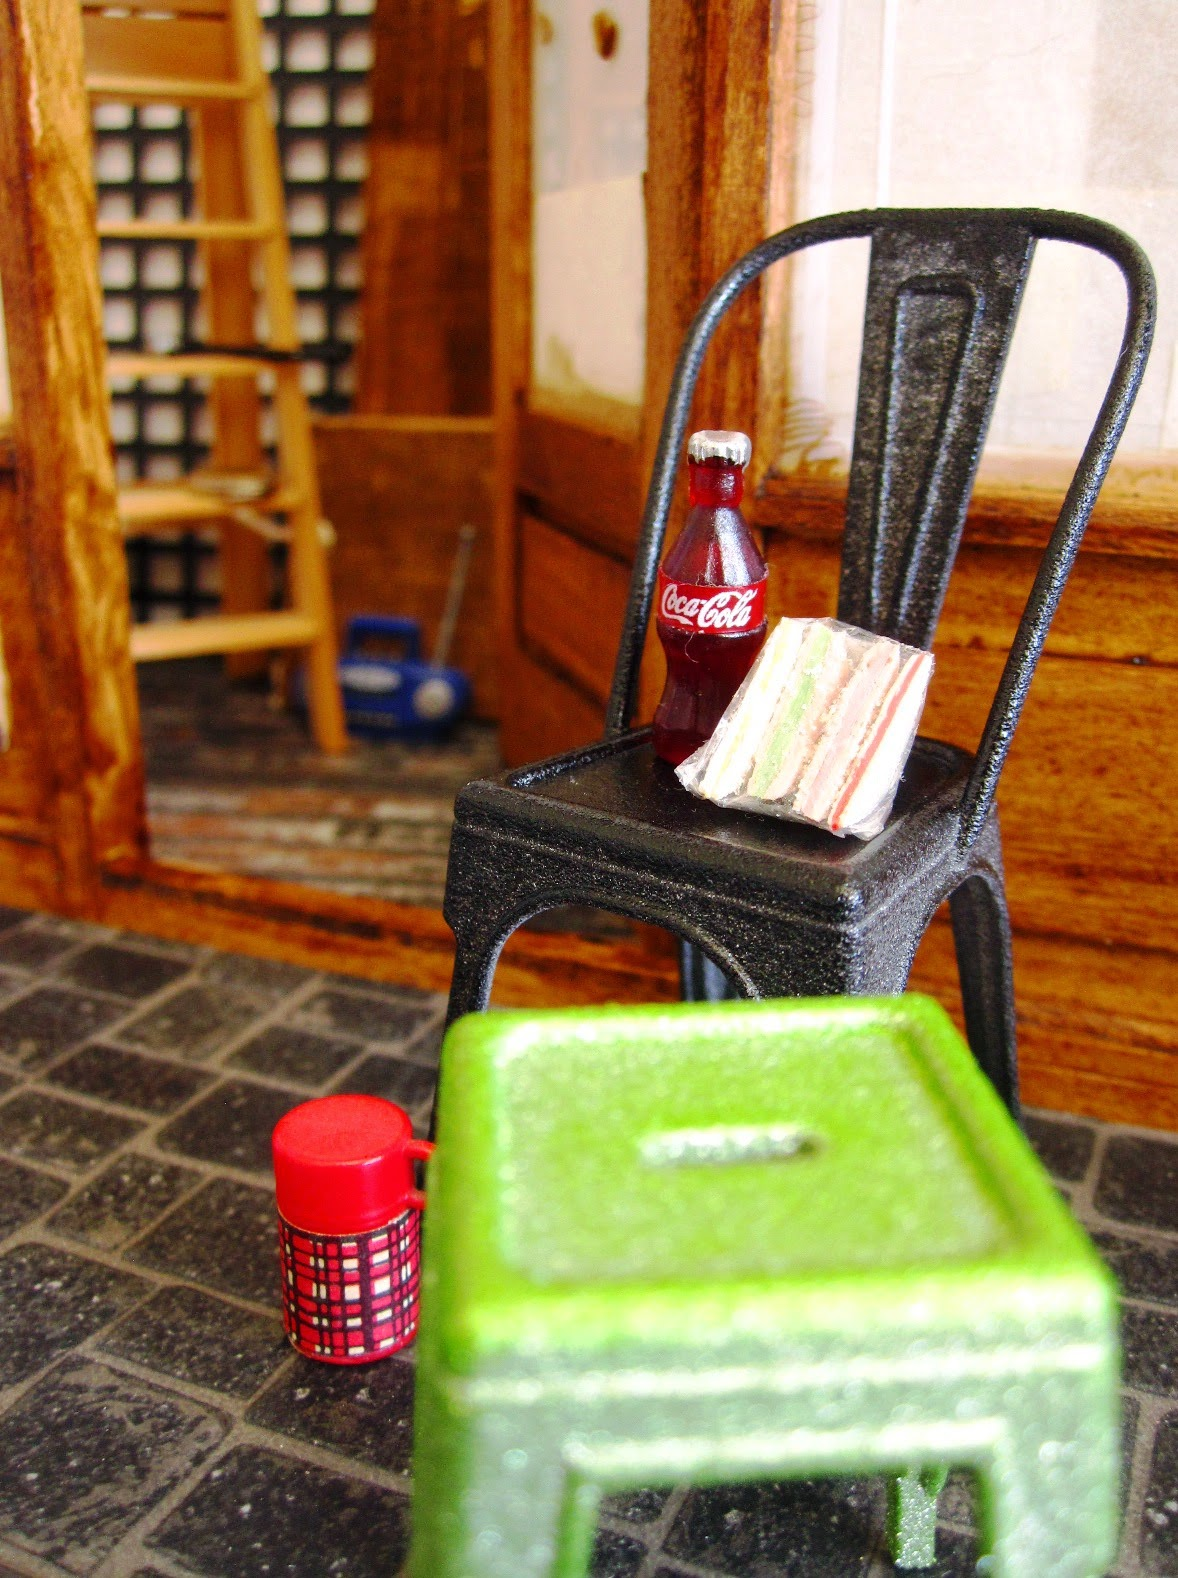 Dolls' house miniature builder's lunch on a cafe chair outside the front door of a cafe being renovated.